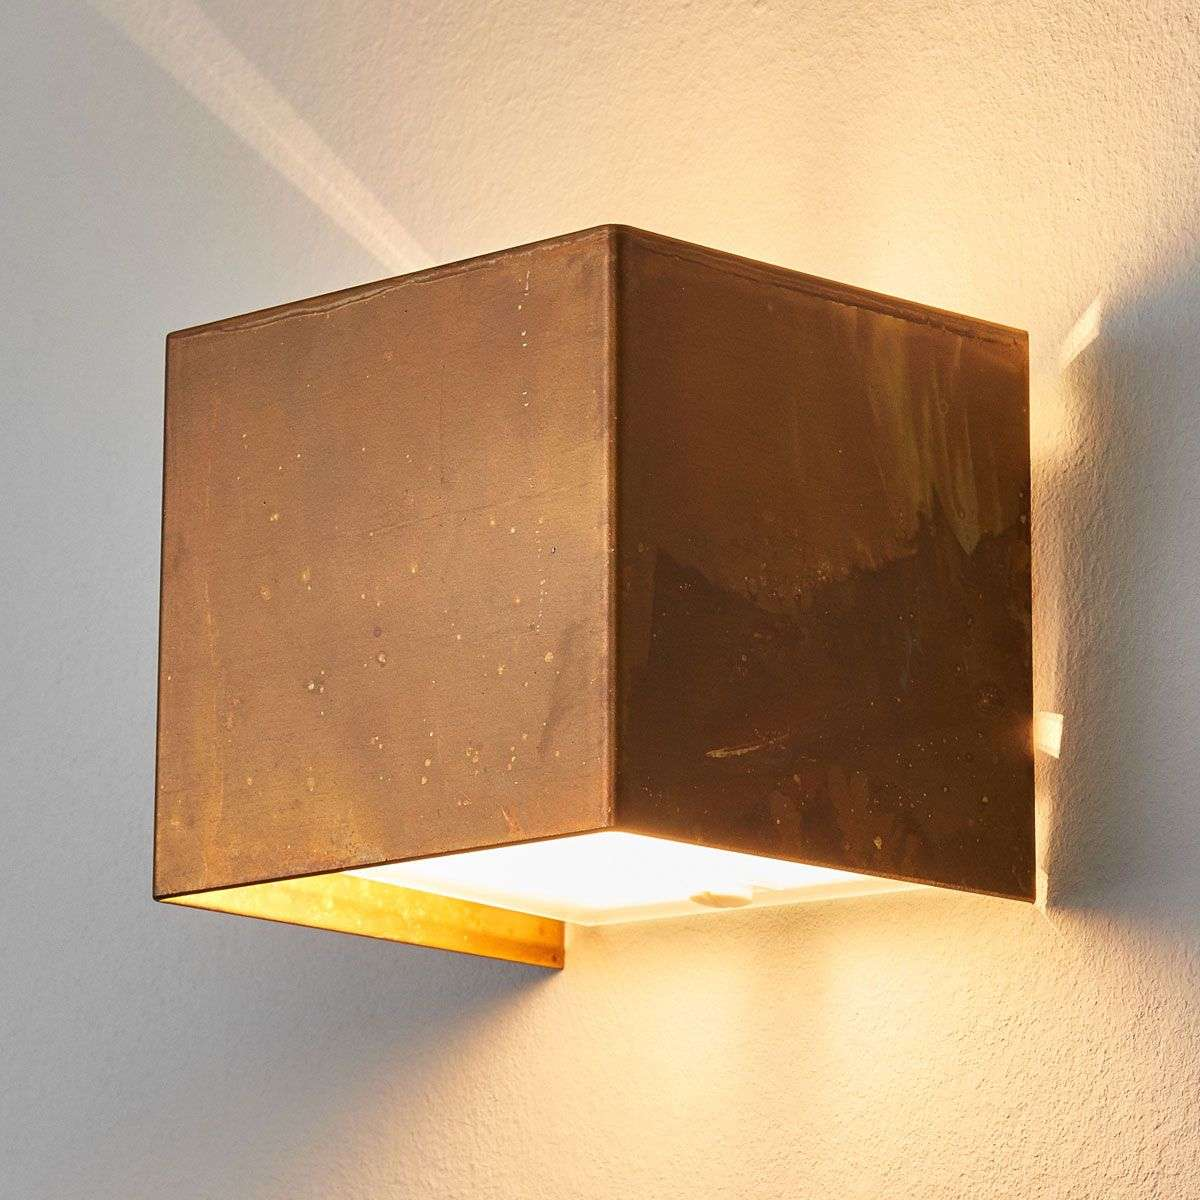 Landscape Supply Co >> Wall lamp LOLA with oxidized brass | Lights.co.uk